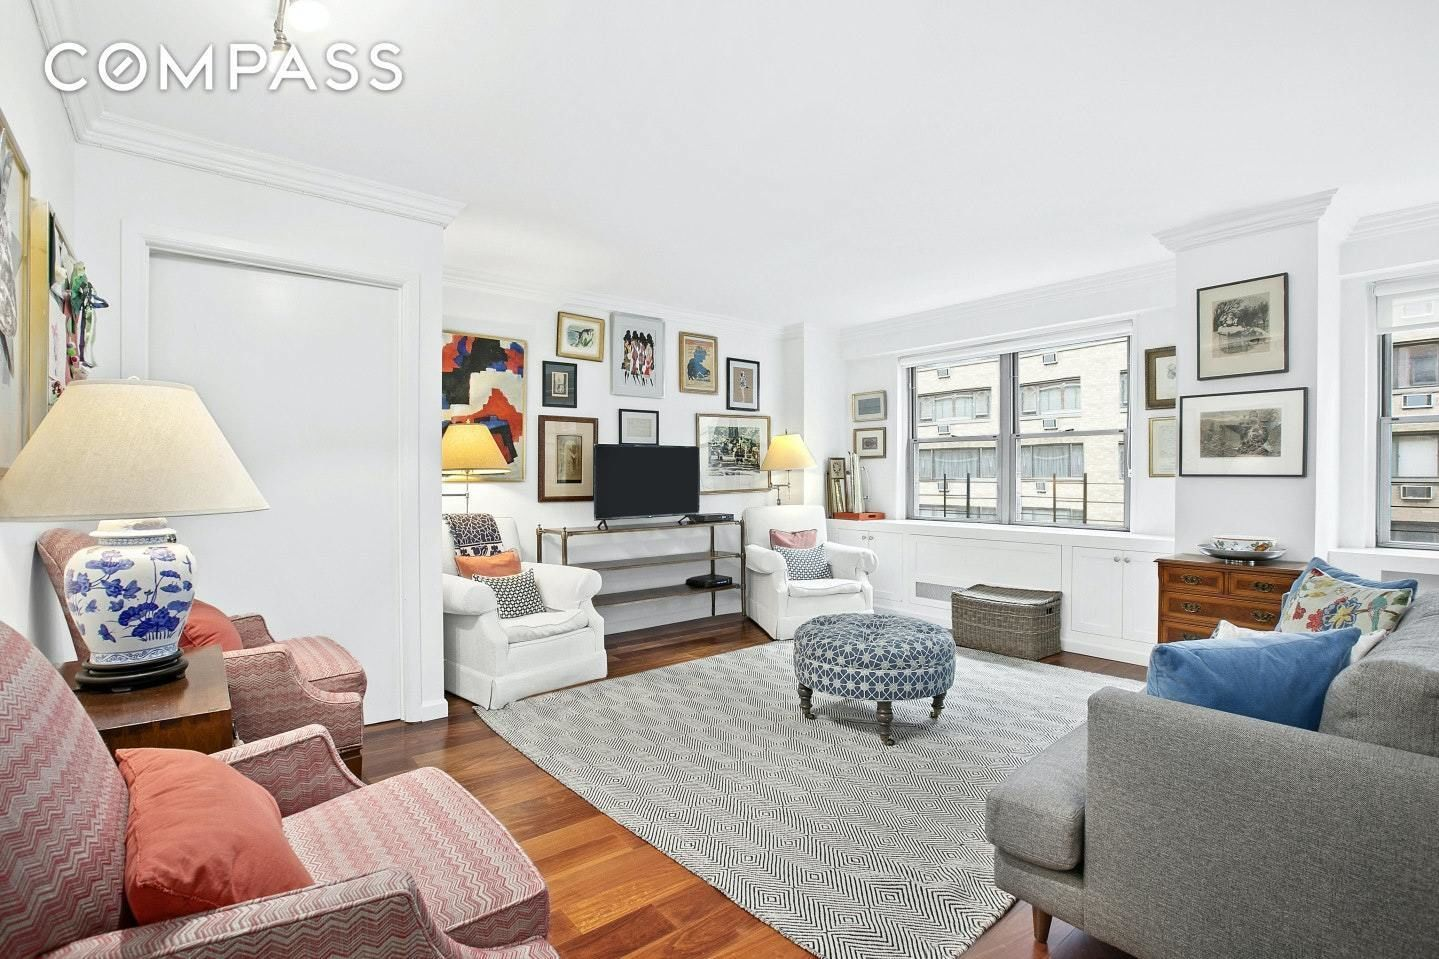 Apartment for sale at 10 West 15th Street, Apt 808/09